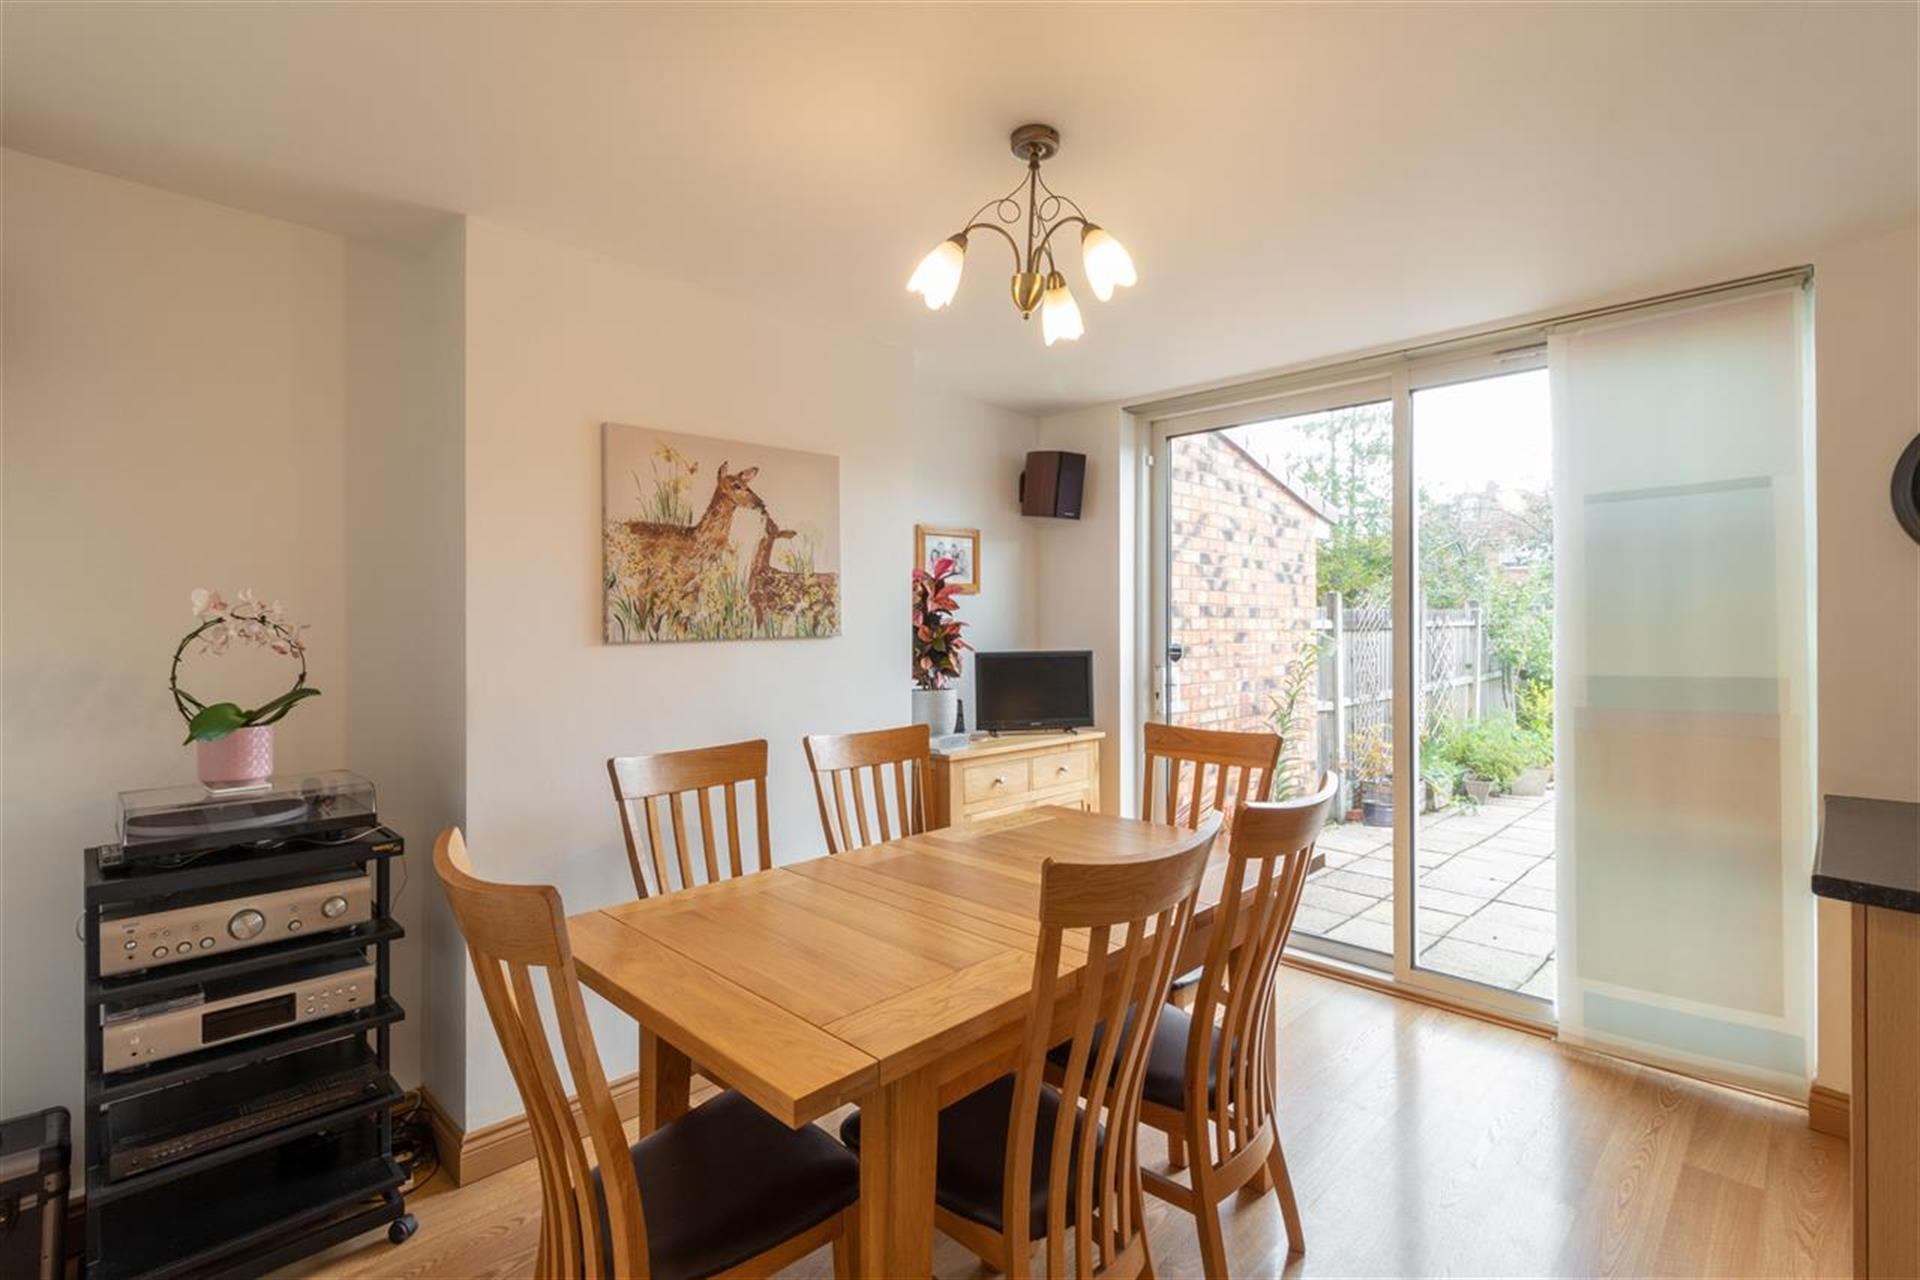 4 Bedroom Semi-detached House For Sale - Dining Area